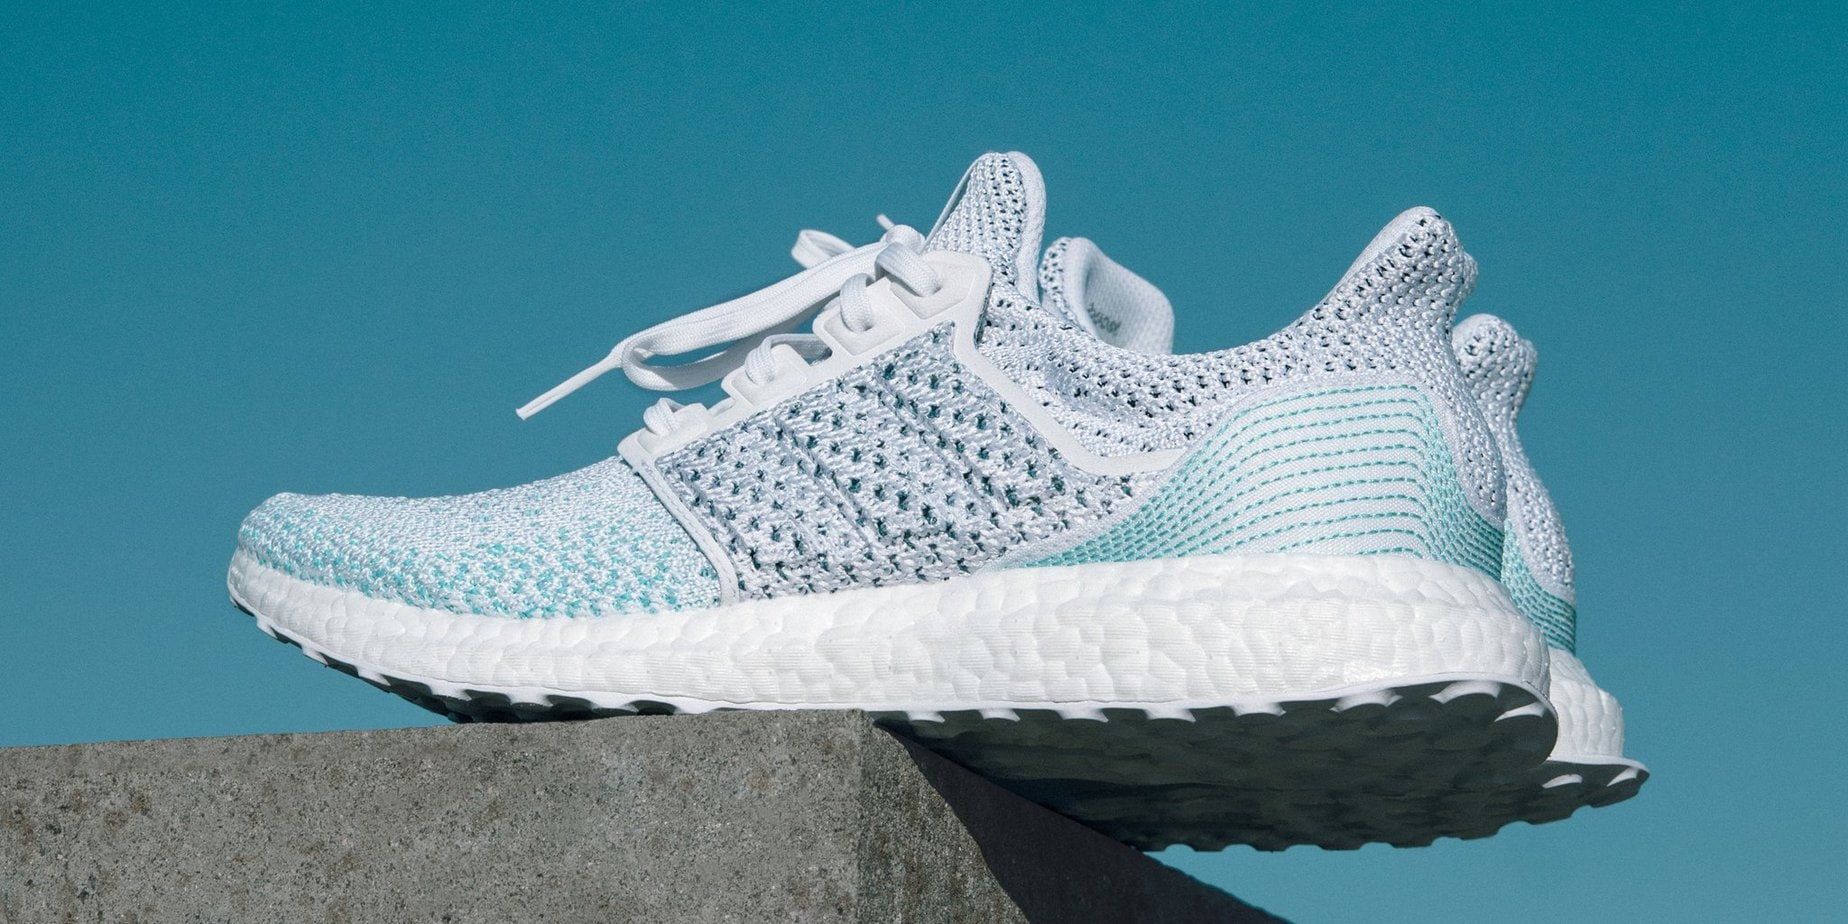 a549ef5e93e The Parley x adidas Ultra Boost Clima LTD is officially set to release this  Friday